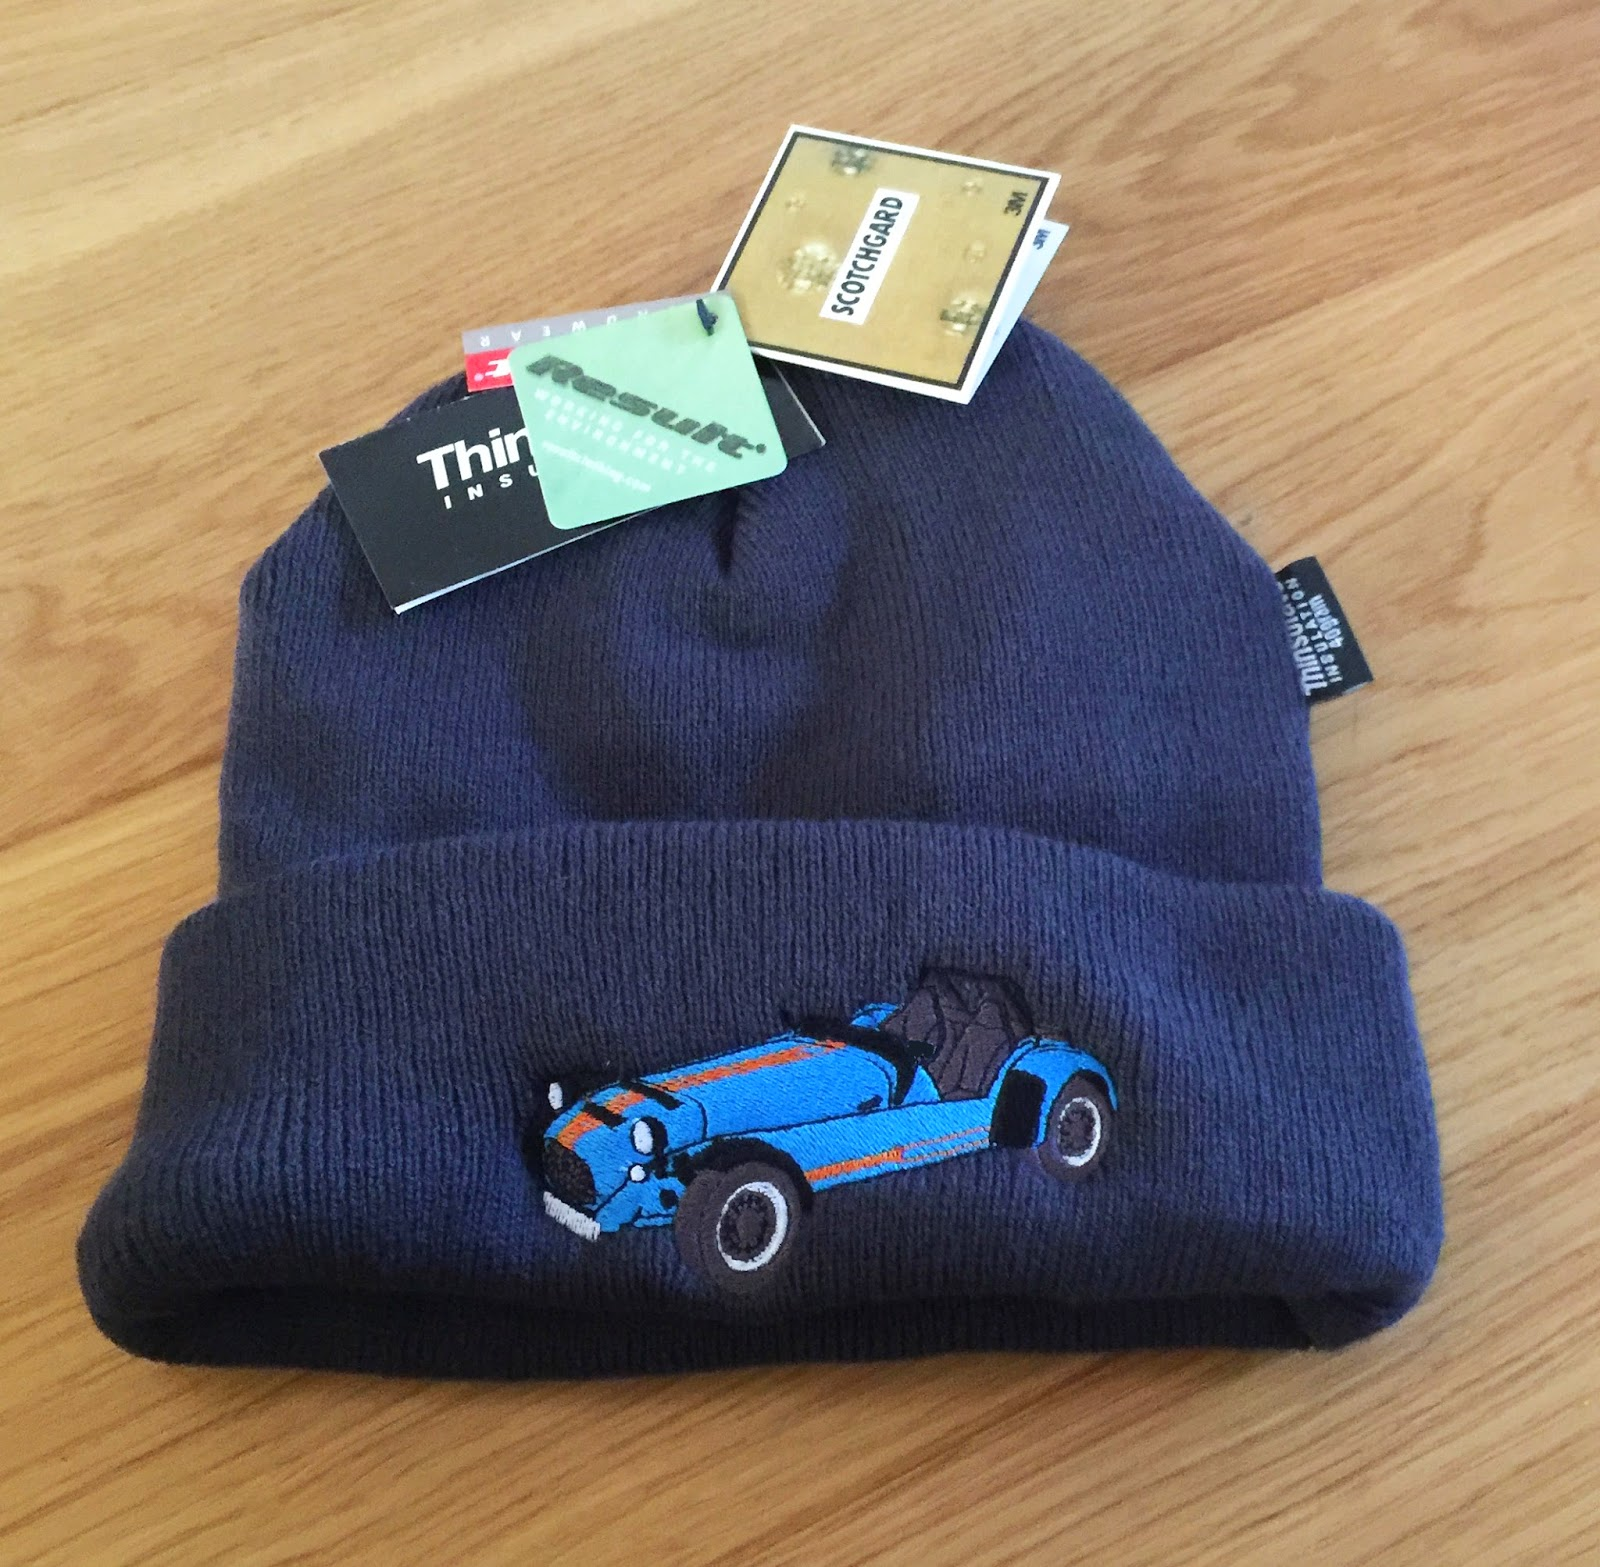 My new blat hat, with embroidered Caterham